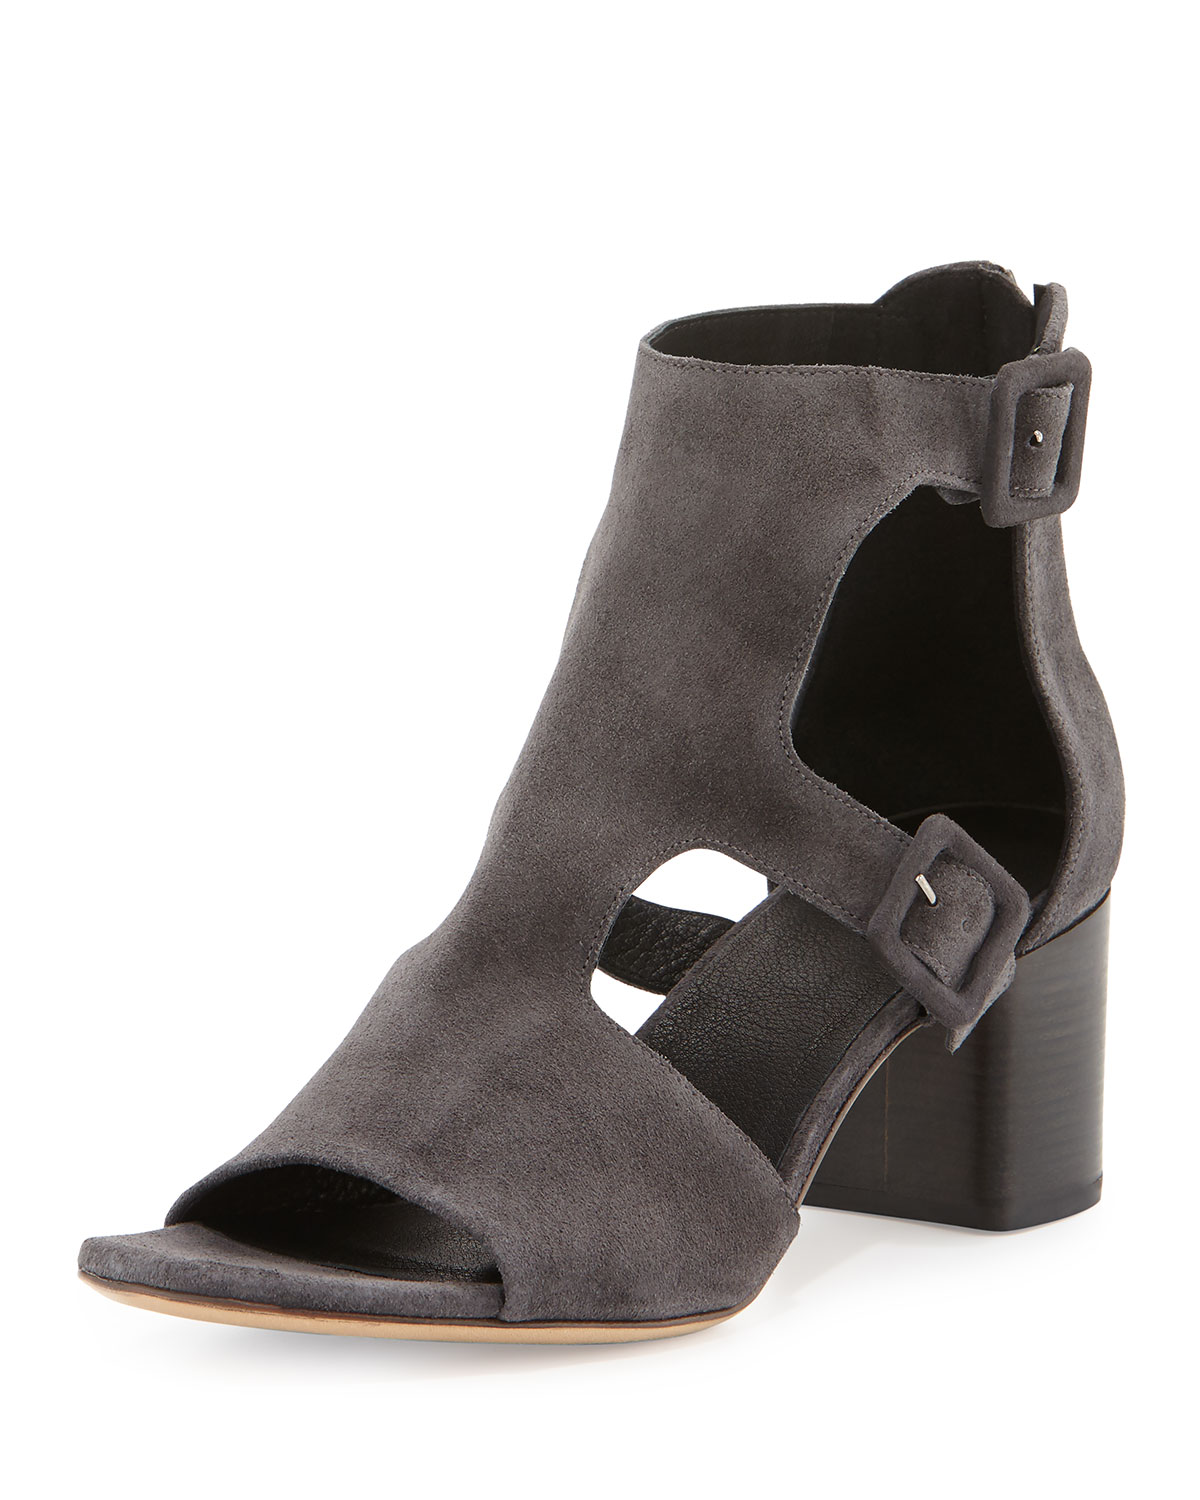 Rag & Bone Matteo Cage Sandals clearance popular outlet where can you find with paypal cheap price wholesale online 2015 for sale 45hqv3